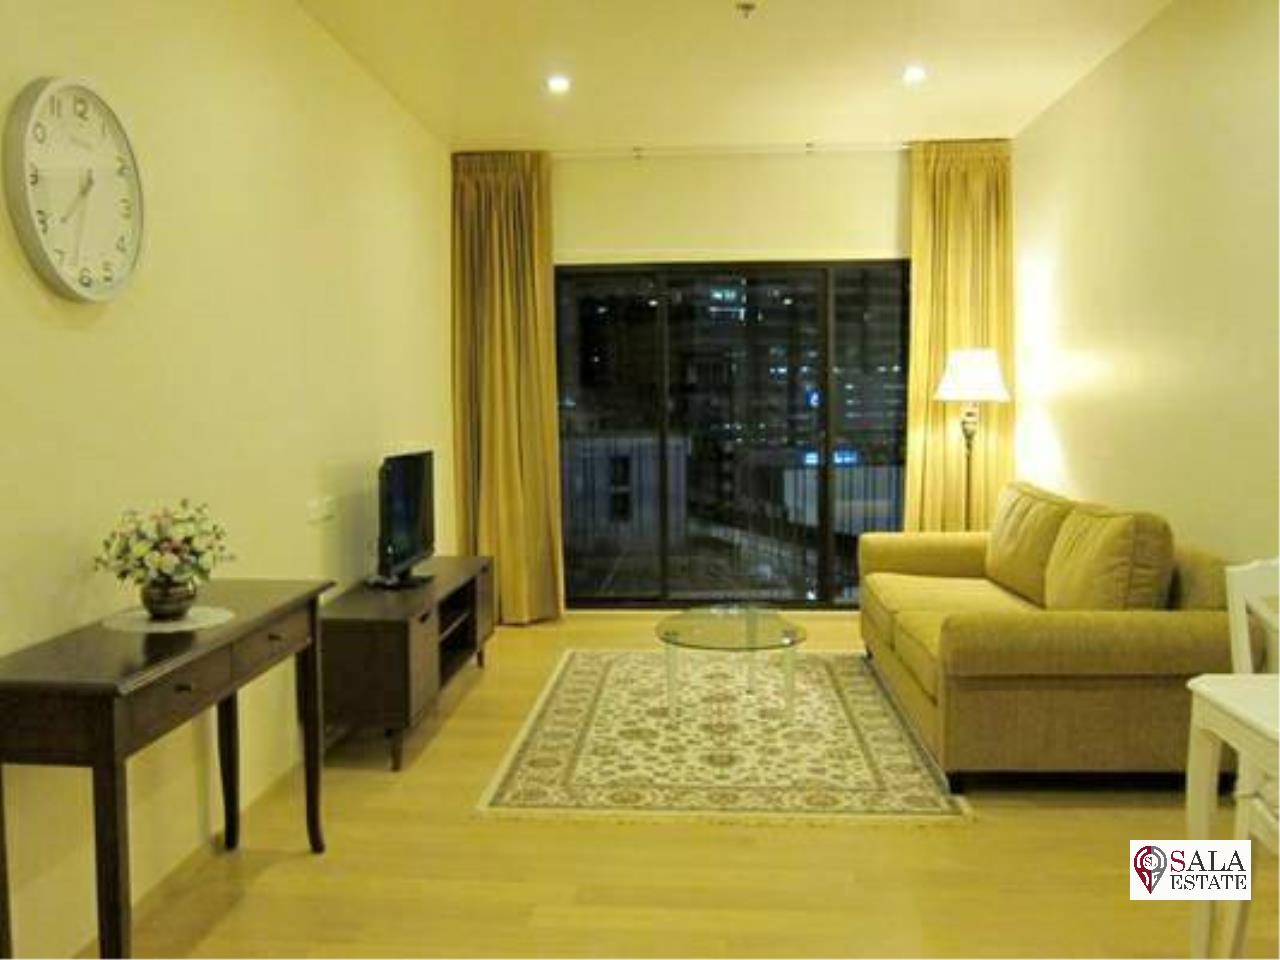 SALA ESTATE Agency's ( FOR SALE ) NOBLE REFORM - BTS ARI, 1 BEDROOM 1 BATHROOM, FULLY FURNISHED WITH CITY VIEW 3